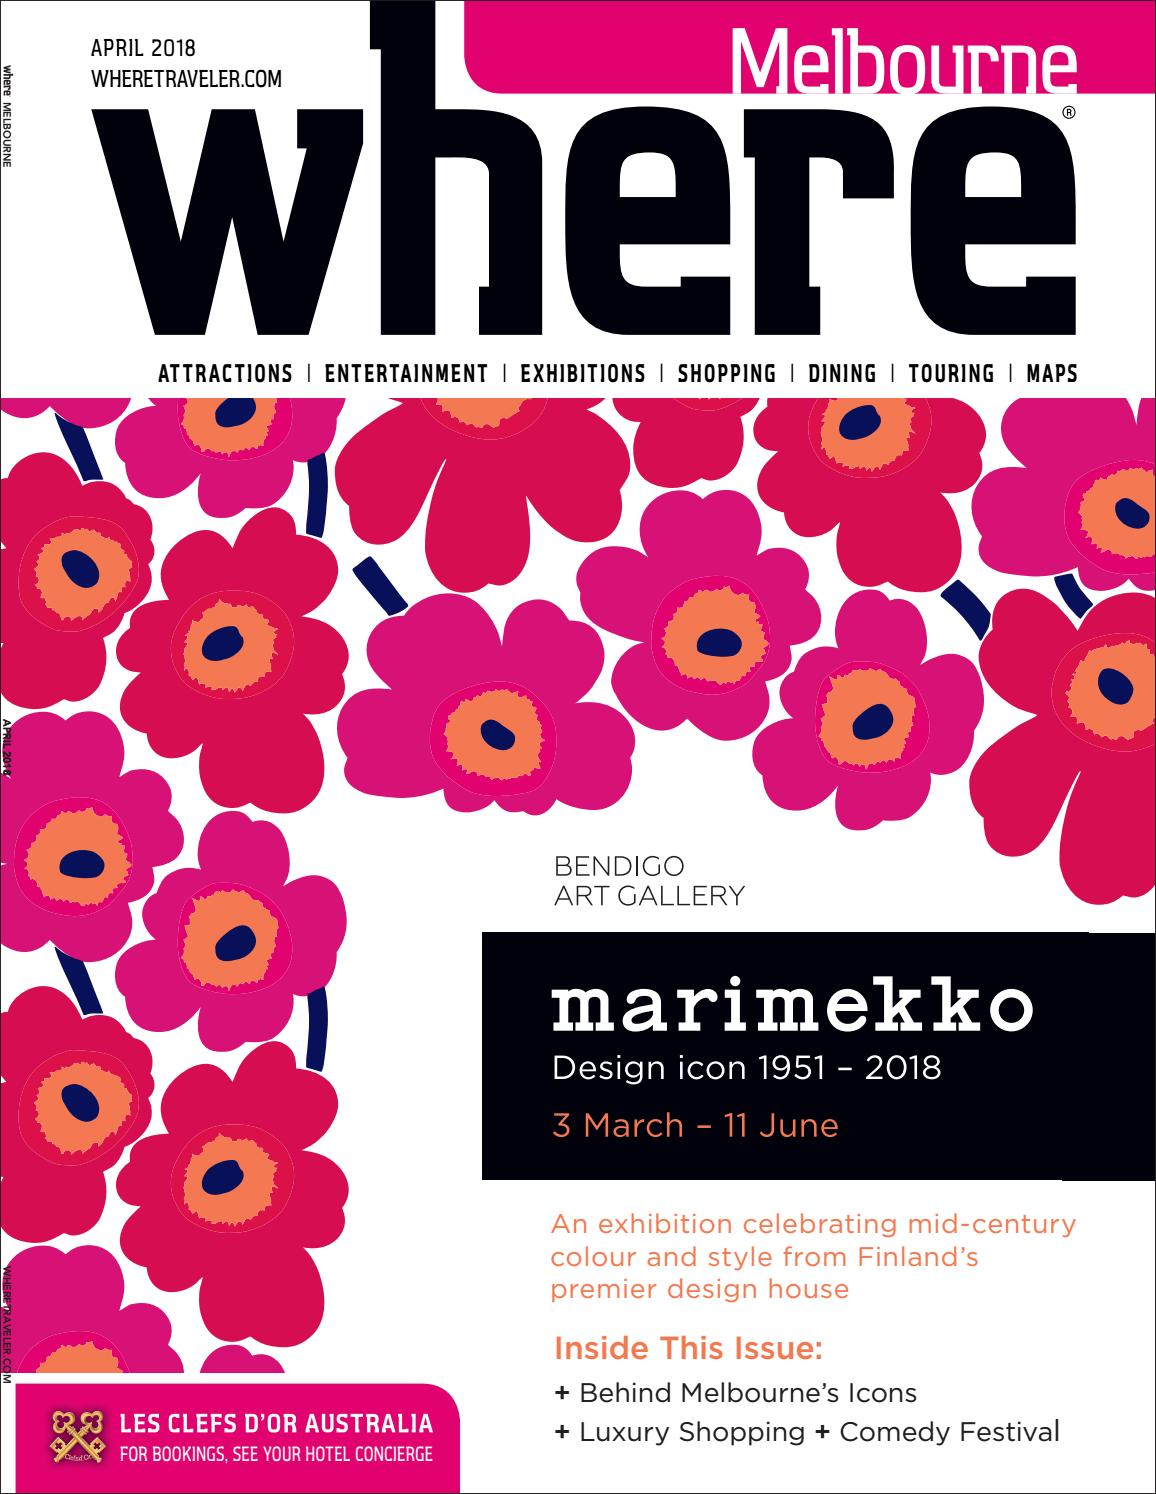 Where Magazine Melbourne Apr 2018 by Morris Media Network - issuu